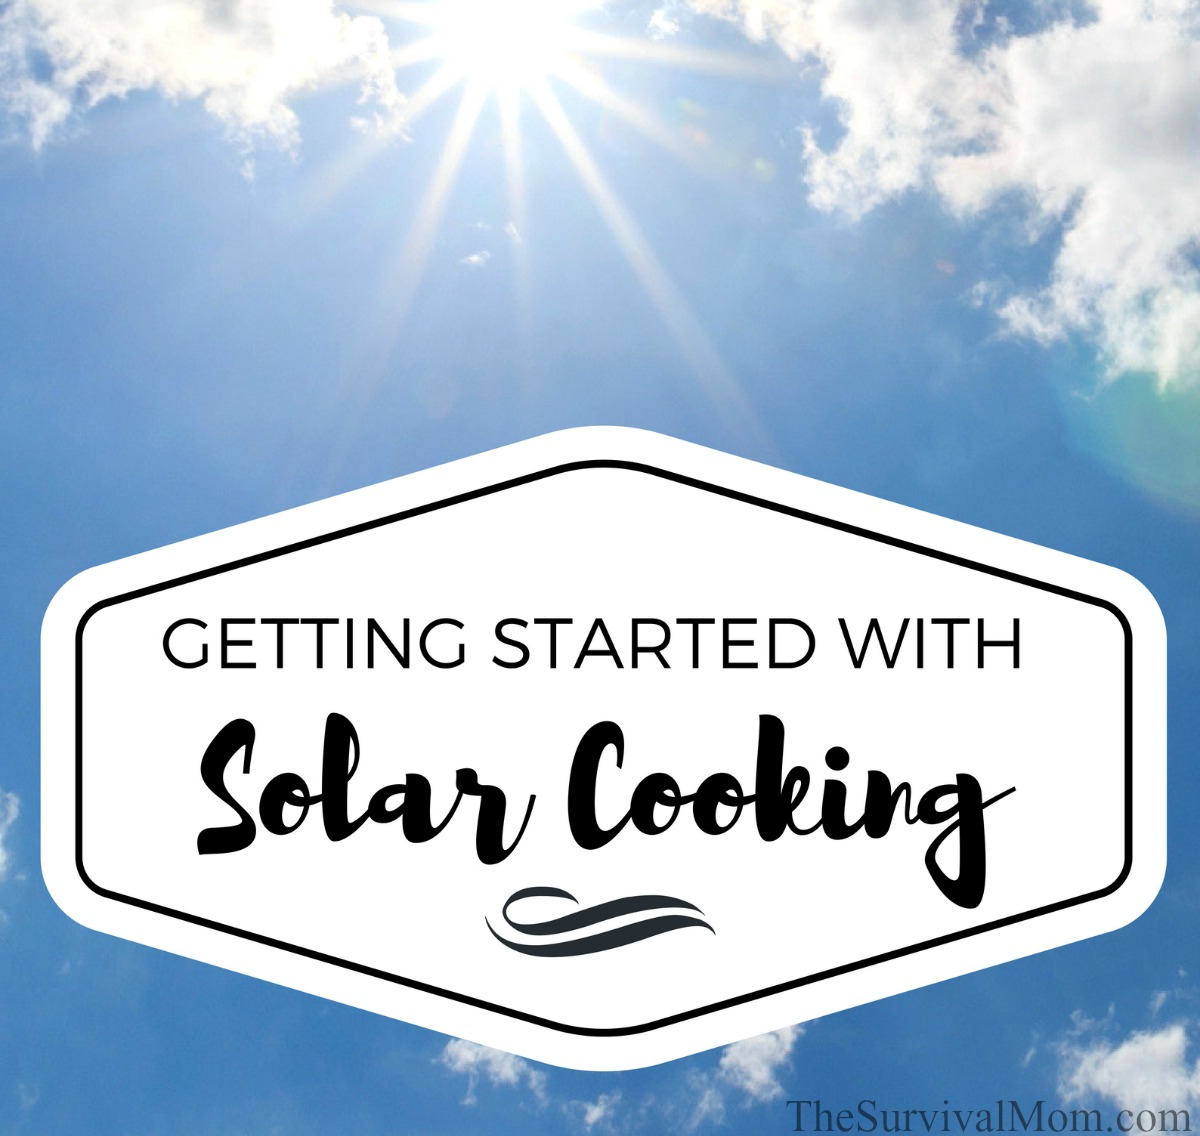 Getting Started With Solar Cooking via The Survival Mom